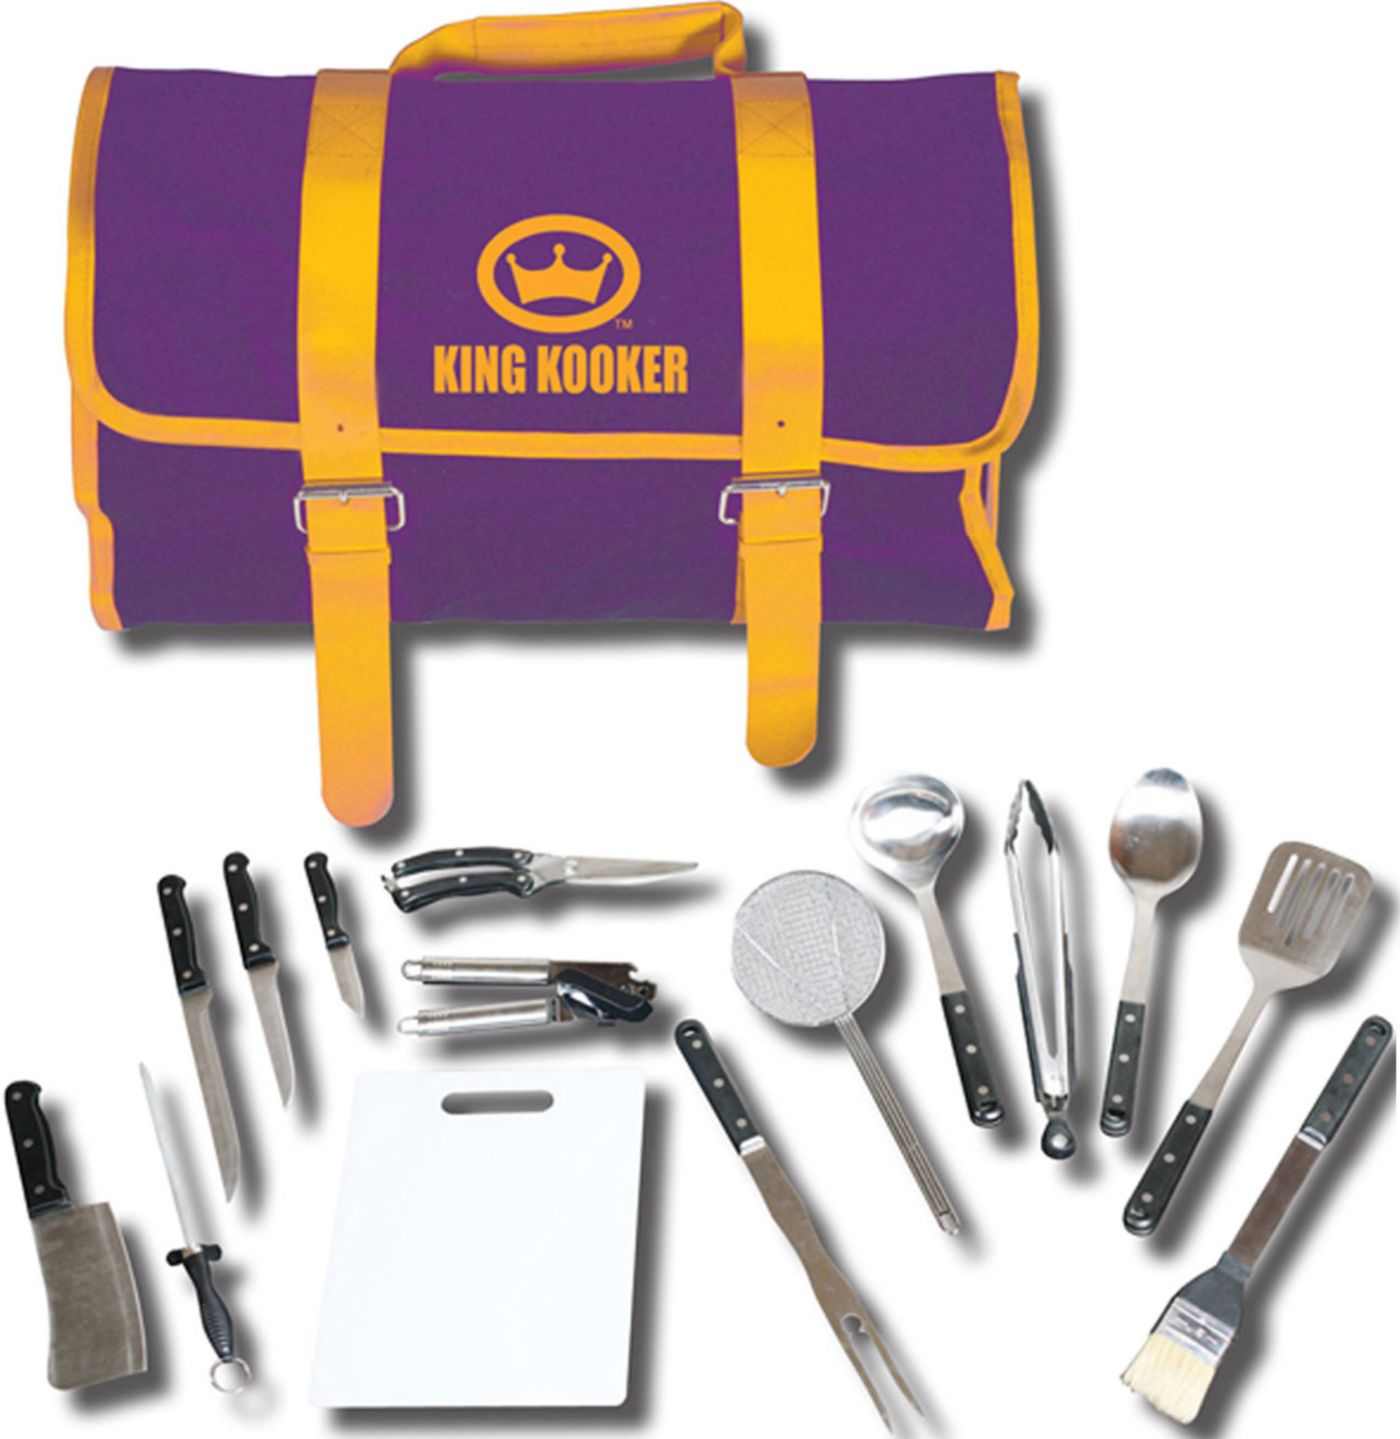 King Kooker 16 Piece Utensil Set with Purple/Gold Carrying Case